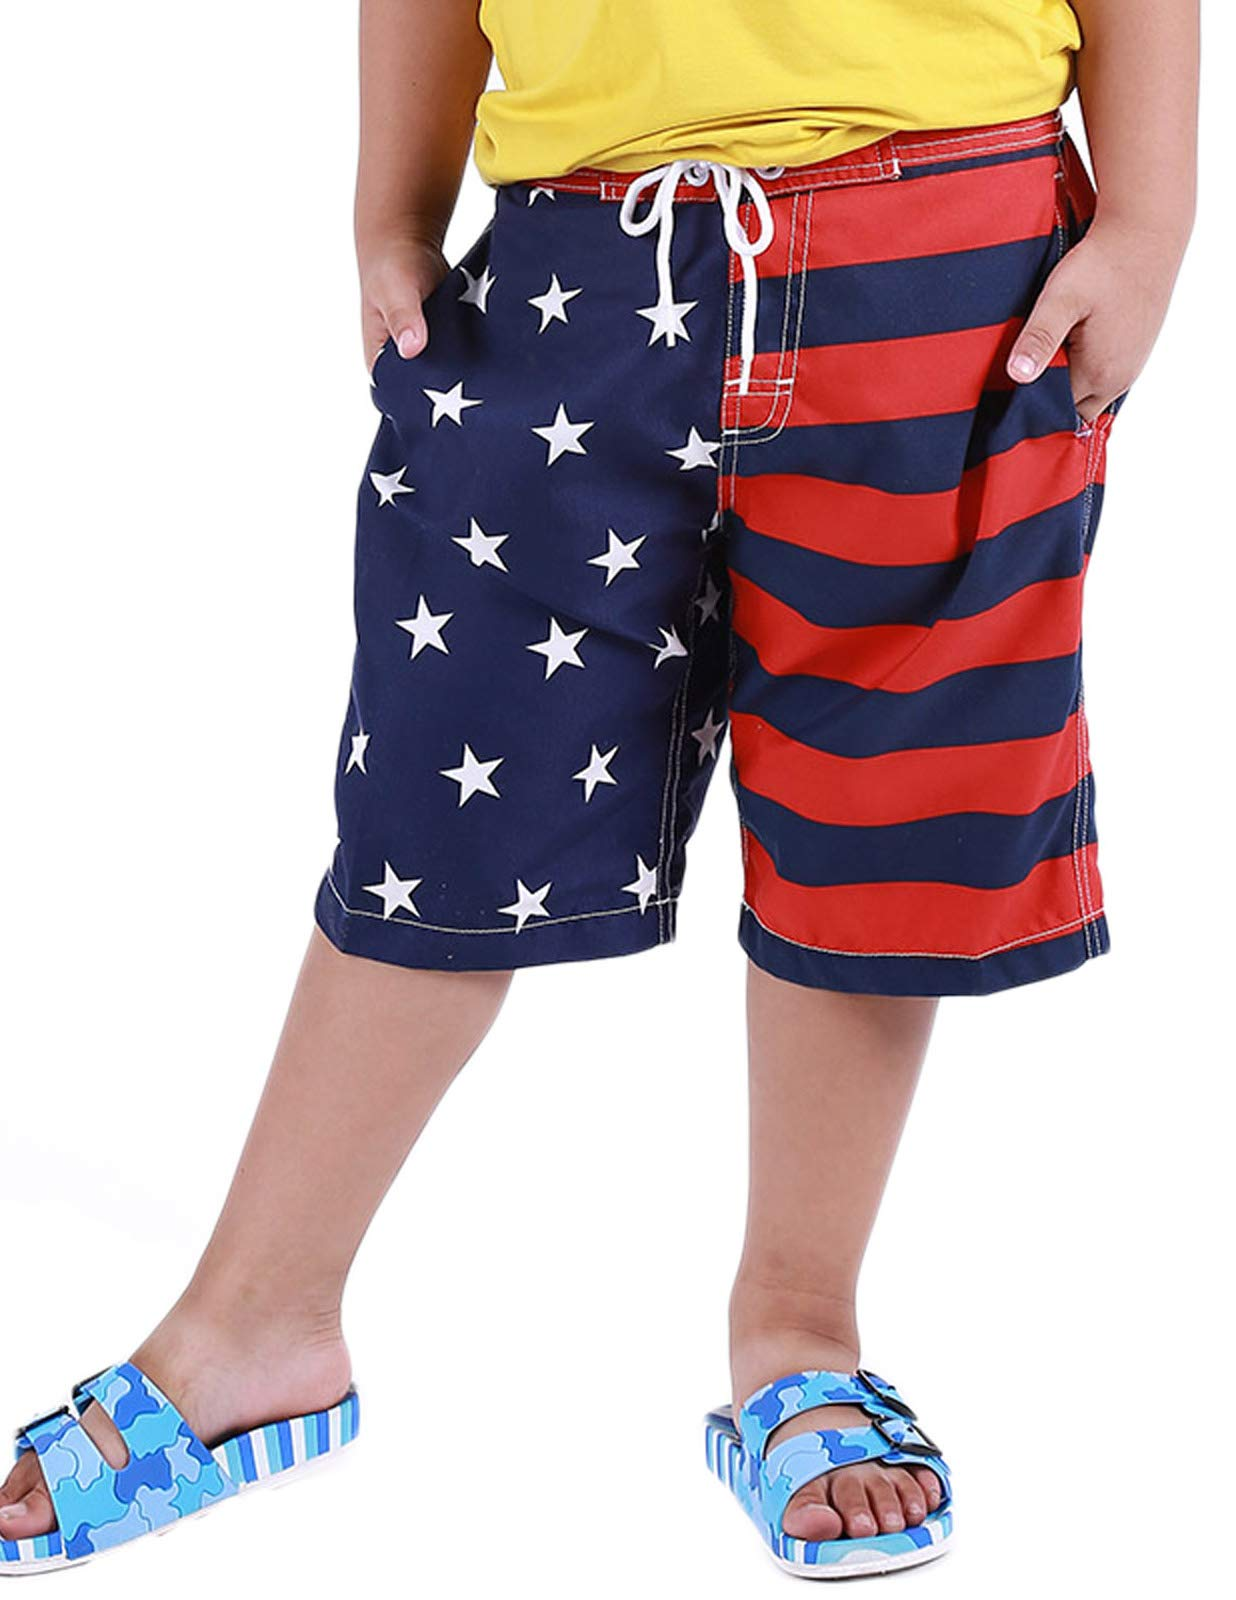 Danna Belle Boys Swim Shorts Stars and Stripes American Flag Swimming Trunk 7-8Yrs DB50-2 by Danna Belle (Image #3)